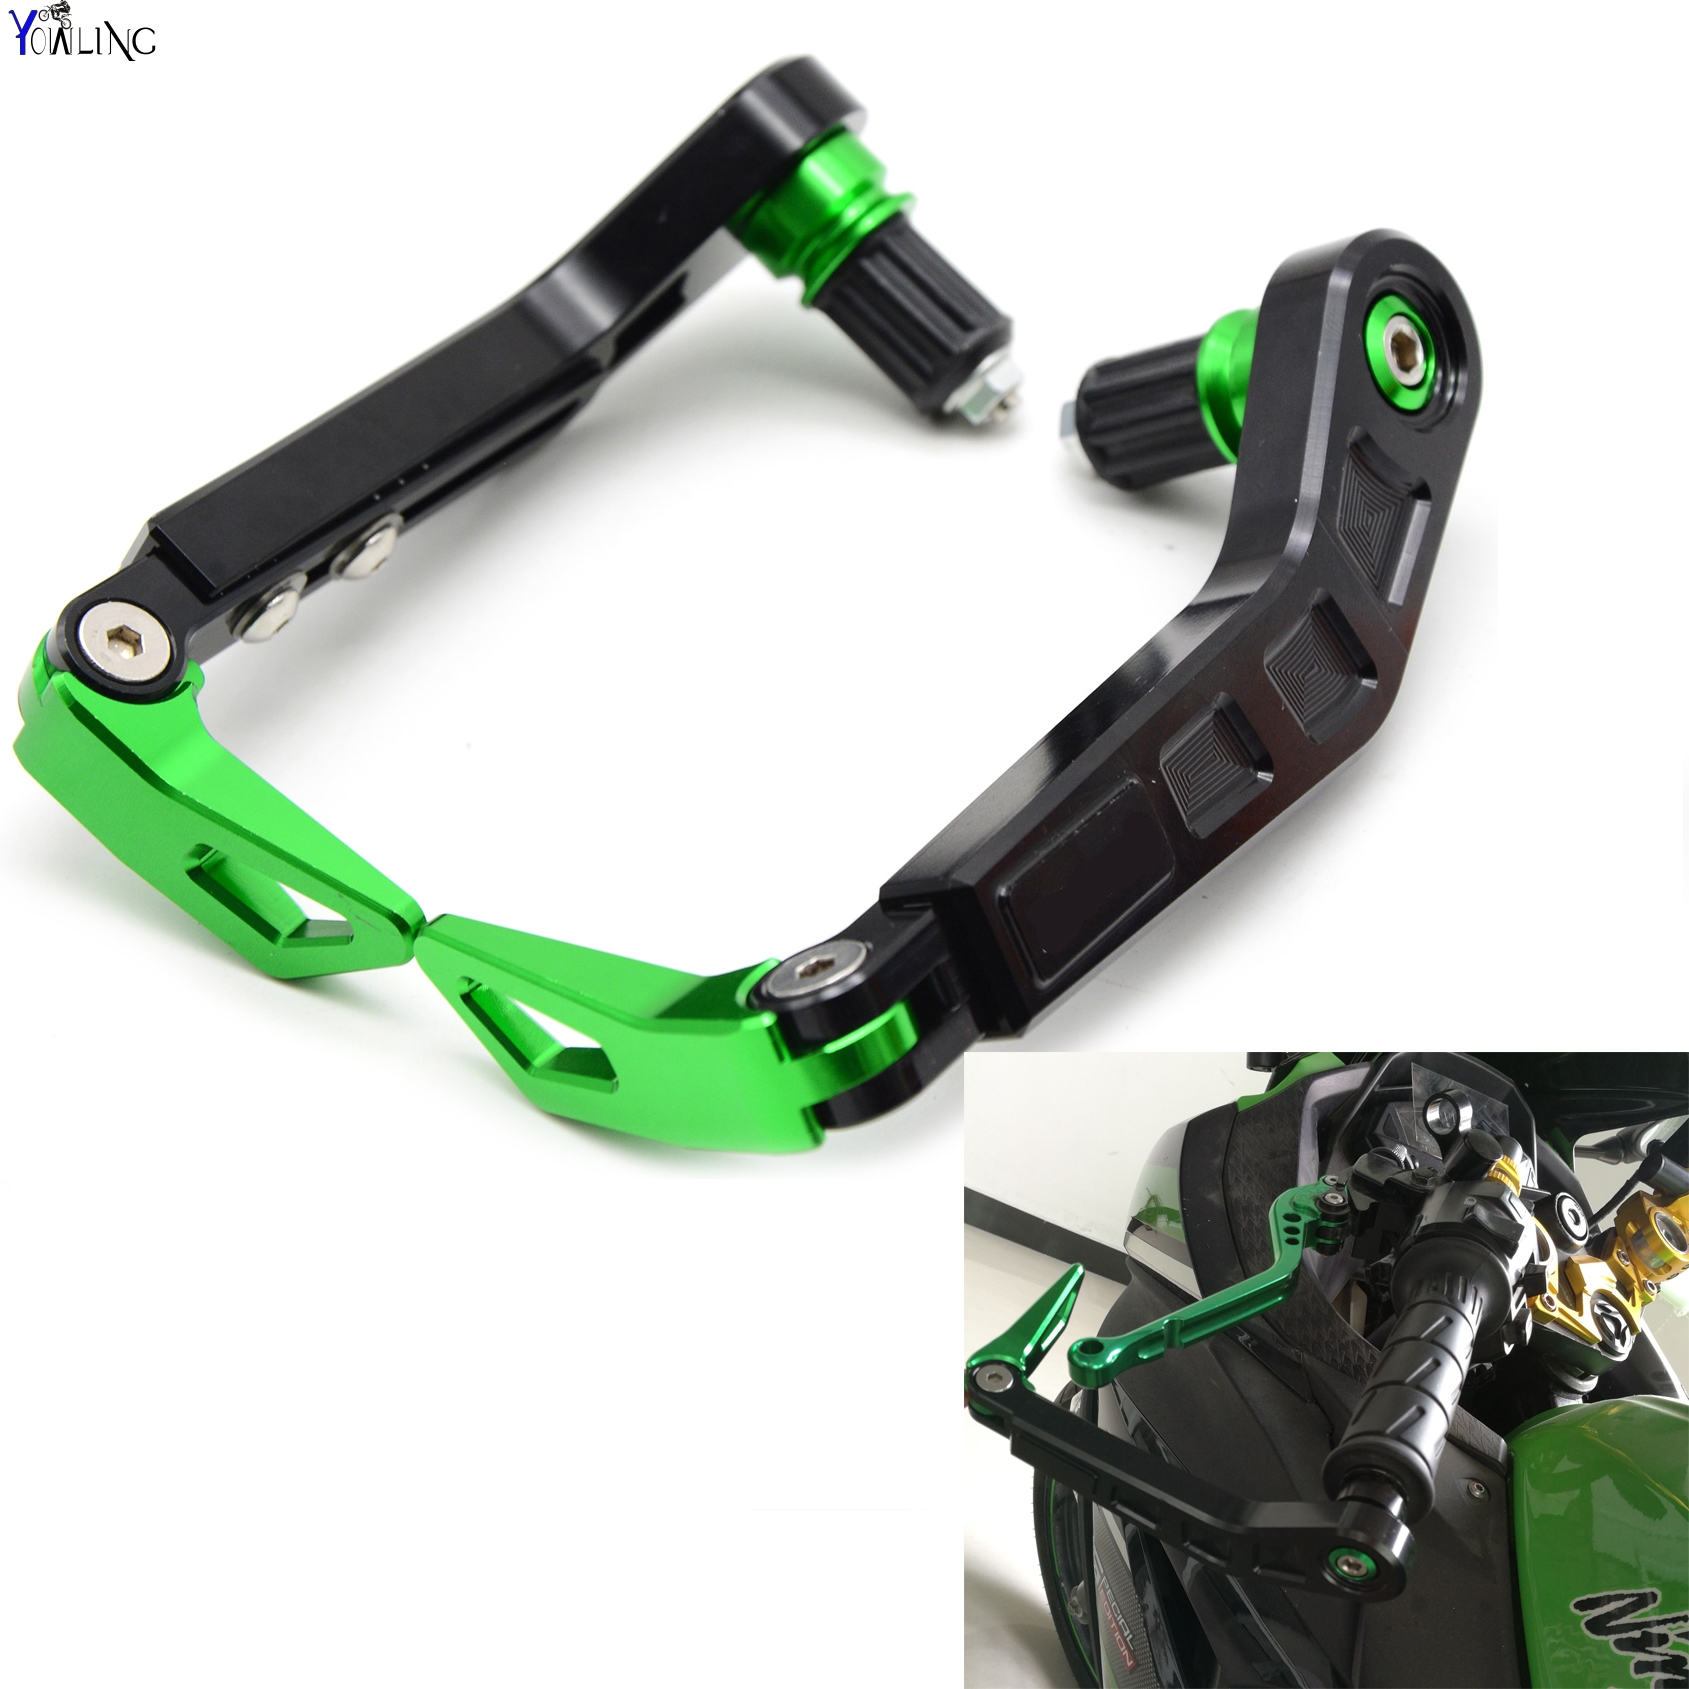 Universal 7/822mm Motorcycle Handlebar Brake Clutch Lever Protect Guard for Kawasaki GTR1400 / CONCOURS H2 H2R MONSTER ZX9R universal 7 8 22mm cnc motorcycle handlebar protector guard proguard brake clutch levers protect for ducati monster 696 695 796